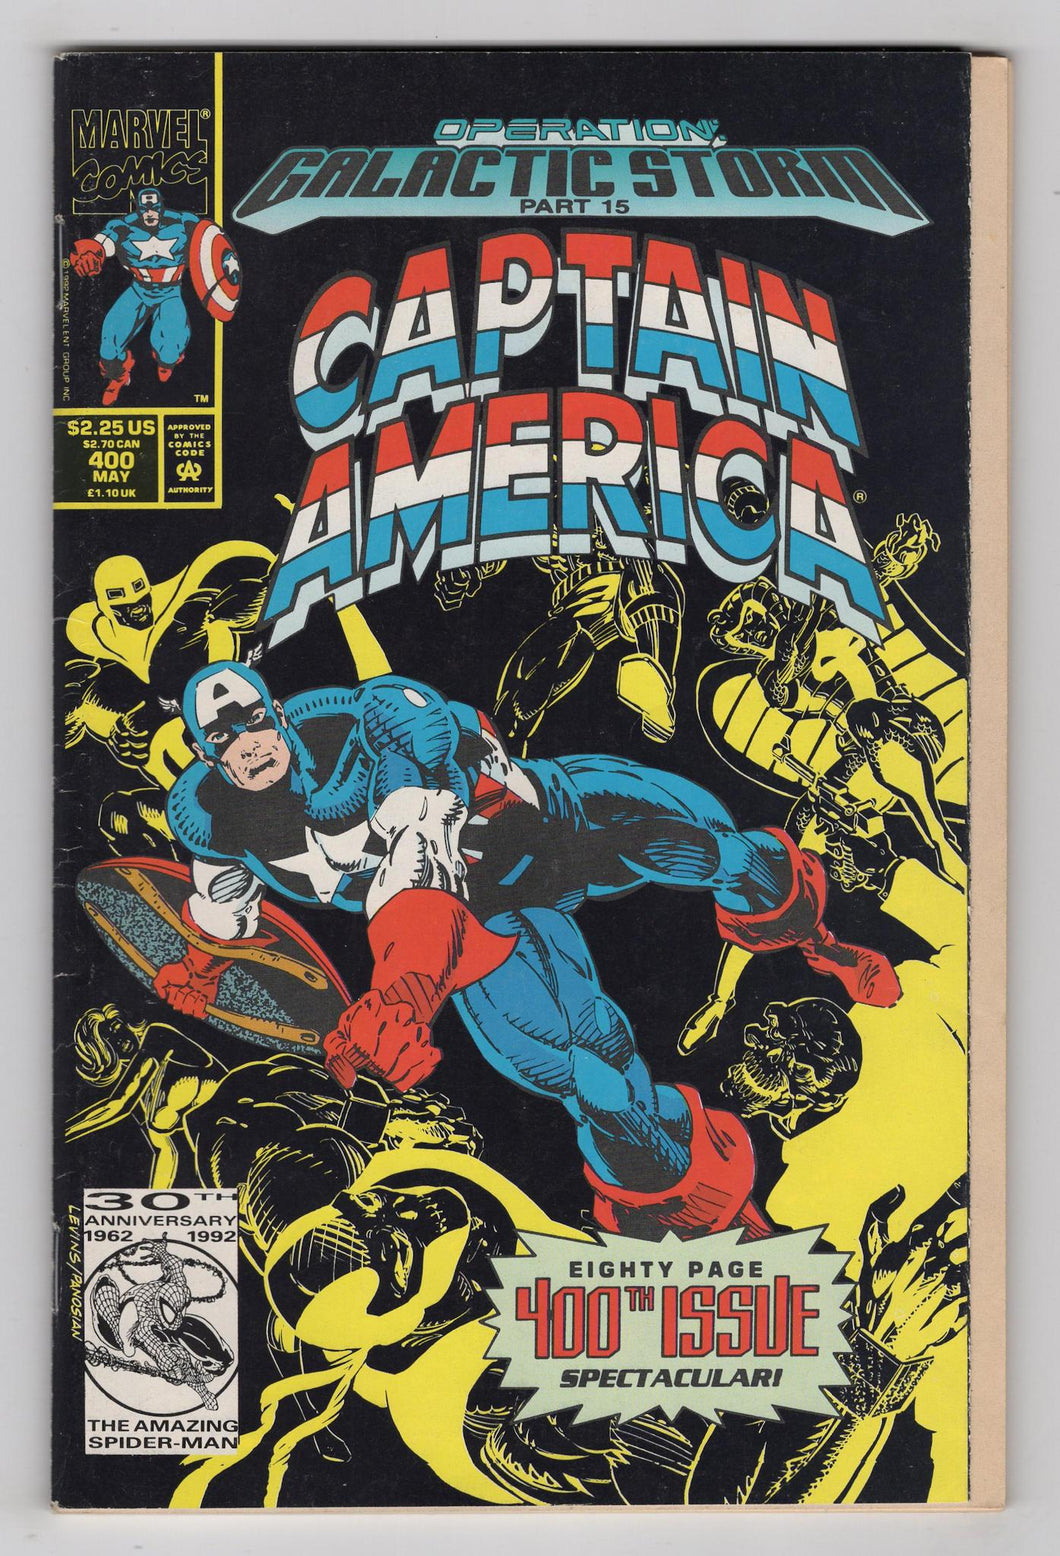 Captain America #400 Cover Front